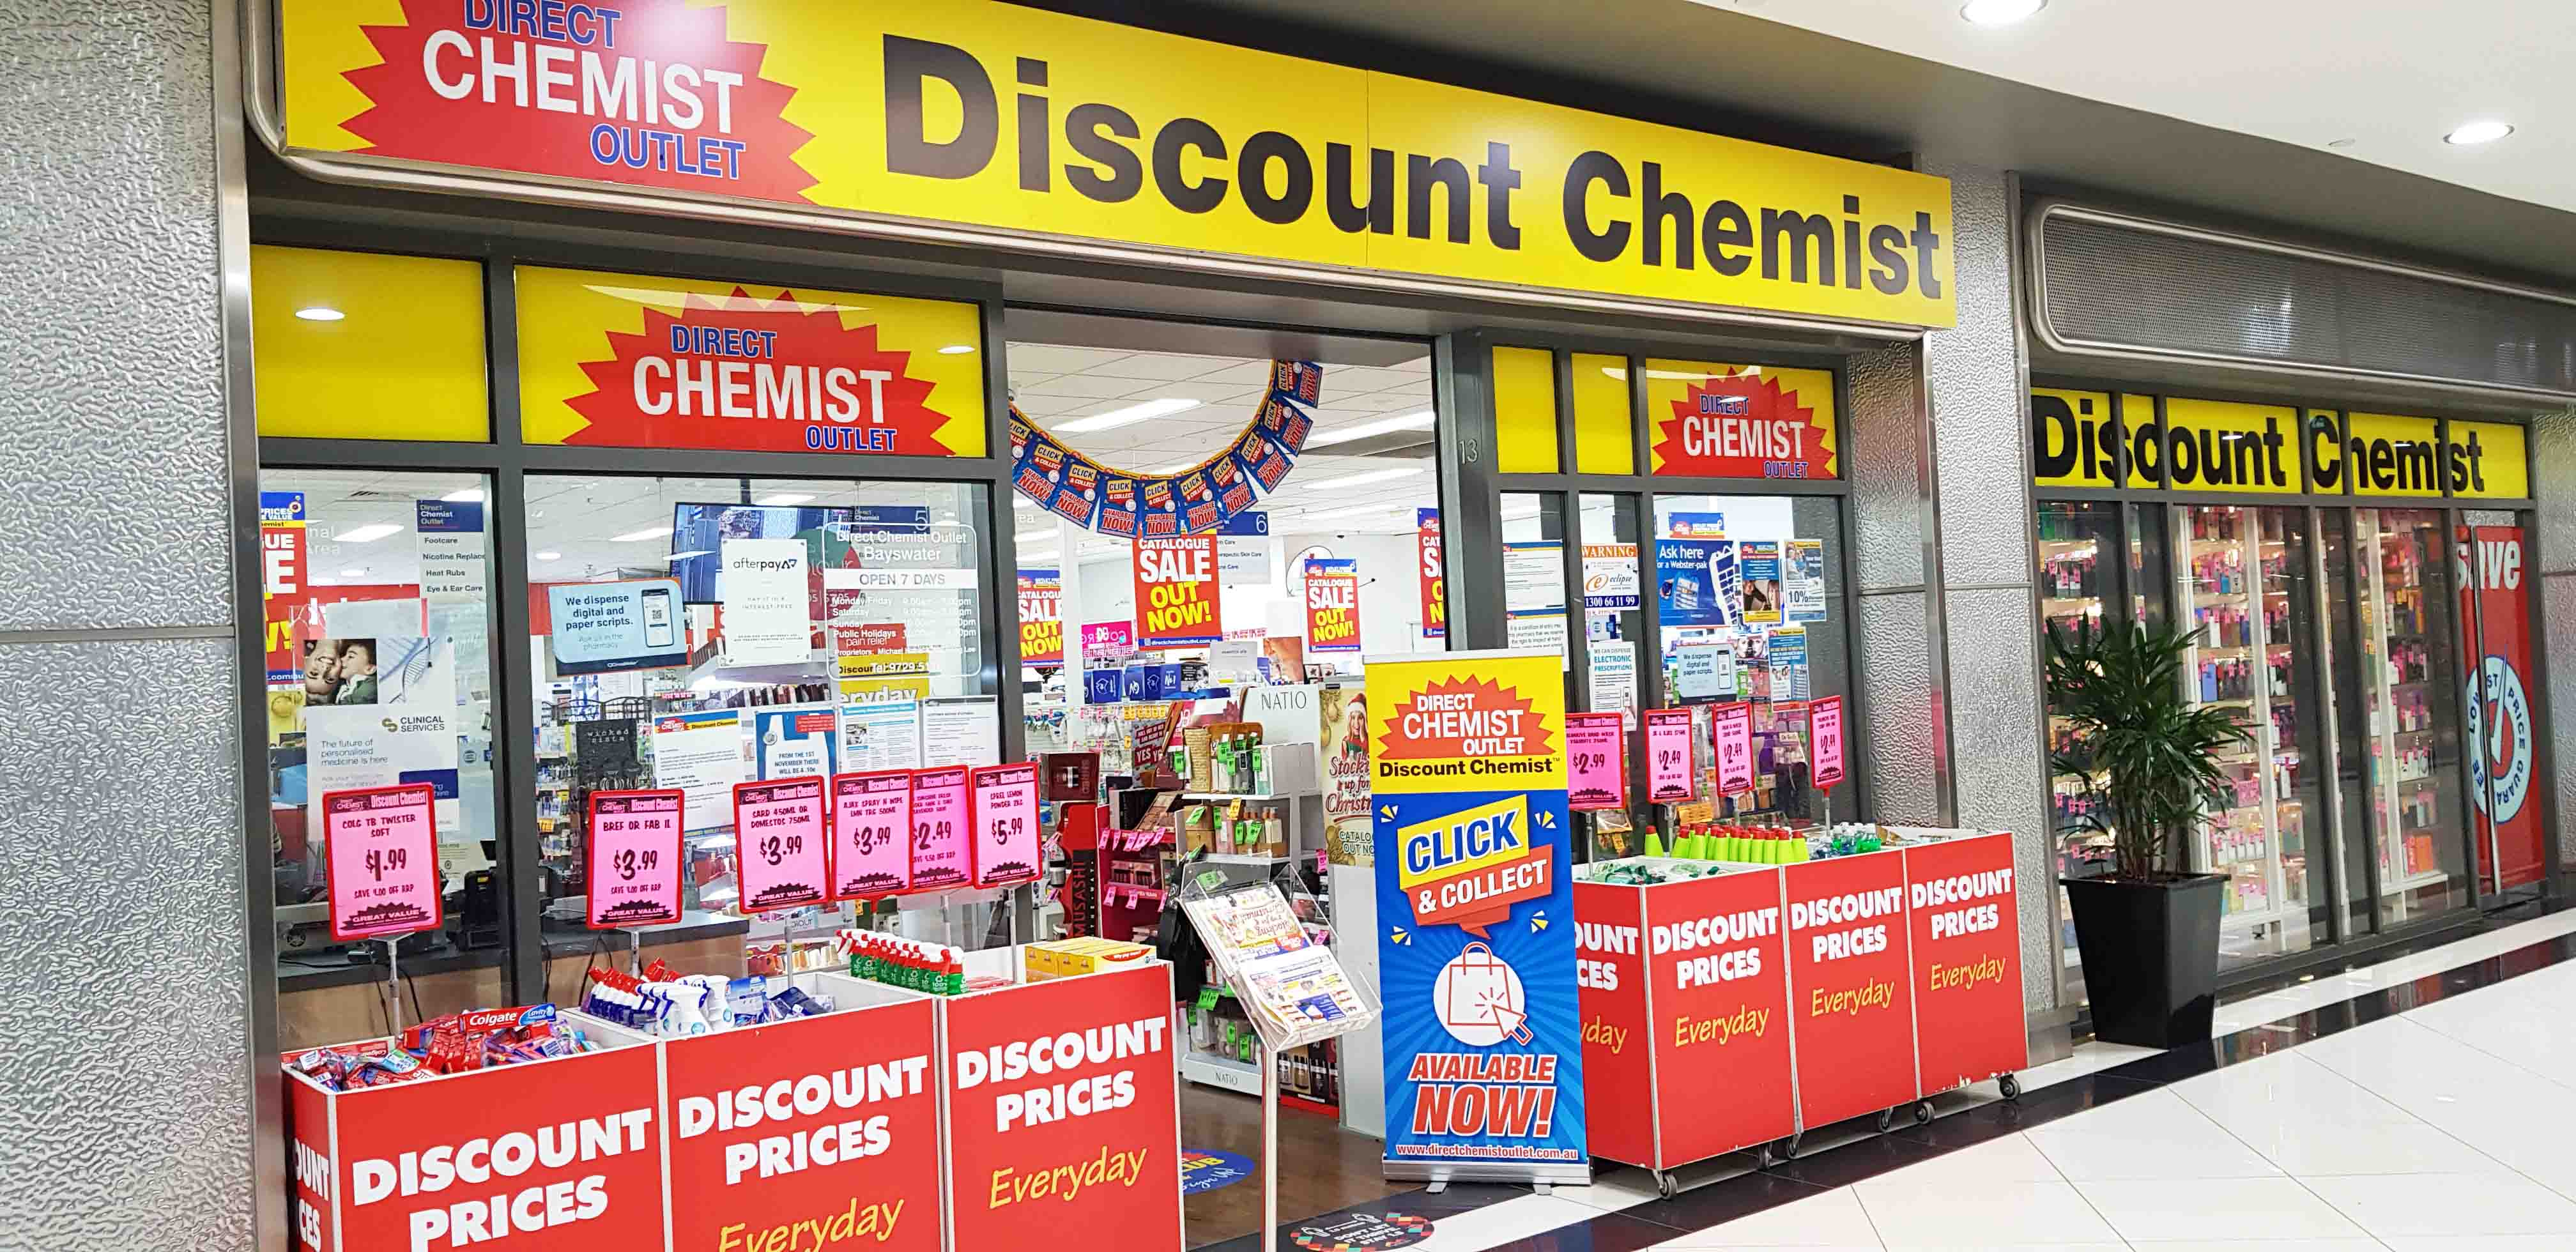 Direct Chemist Outlet Bayswater